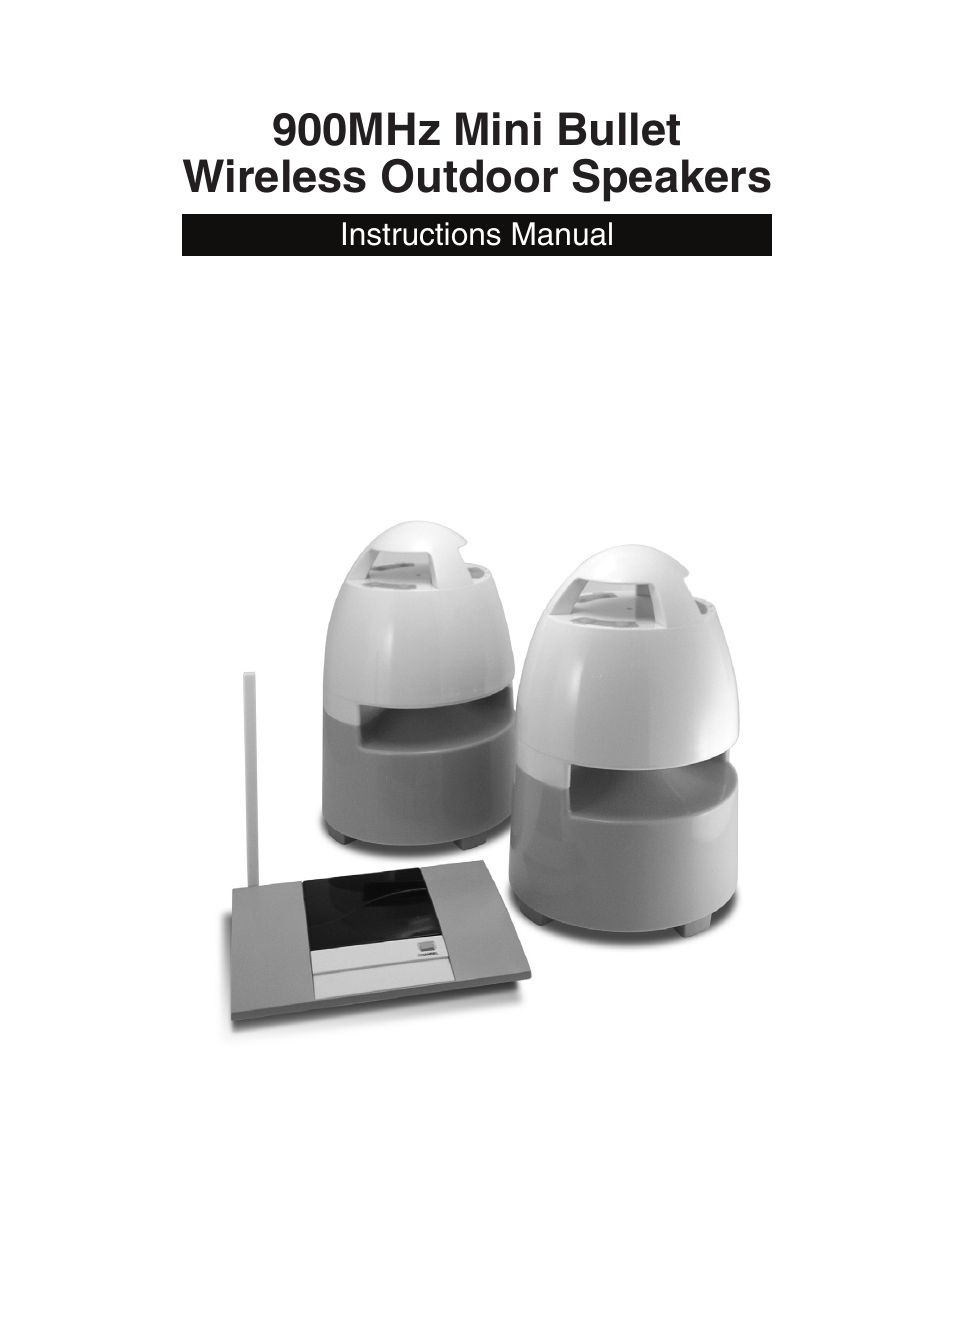 Mark Feldstein Associates Wireless Indoor Outdoor Bullet Speakers User Manual